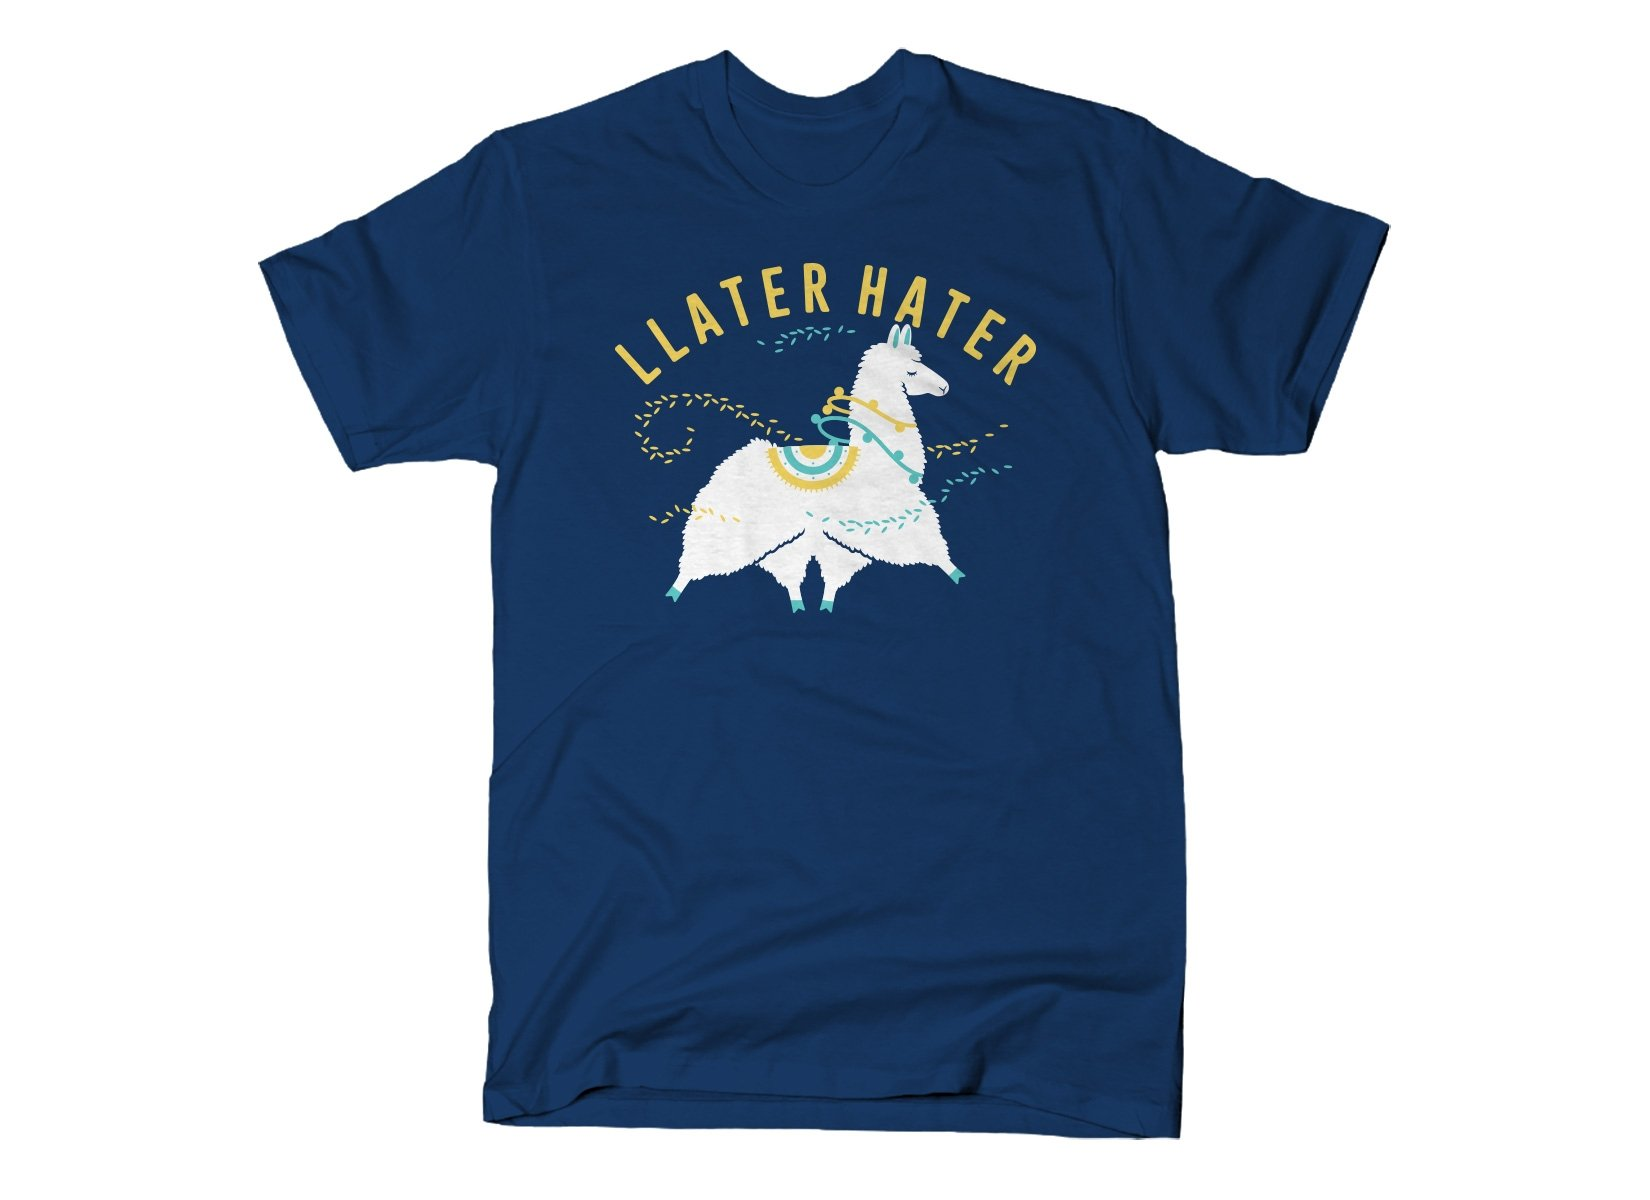 Llater Hater on Mens T-Shirt